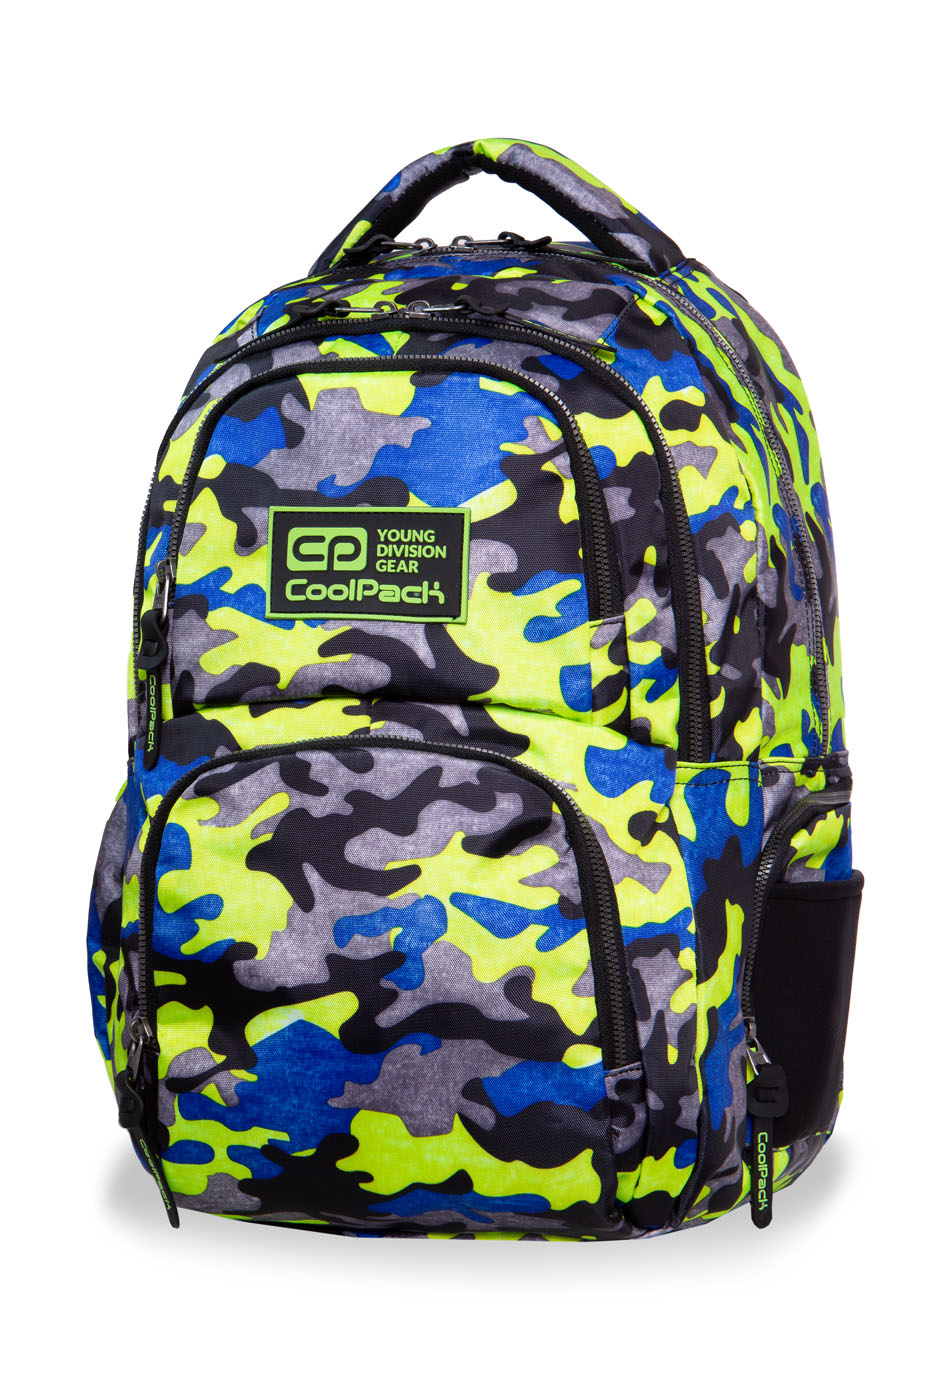 Coolpack - aero - youth backpack - camo fusion yellow